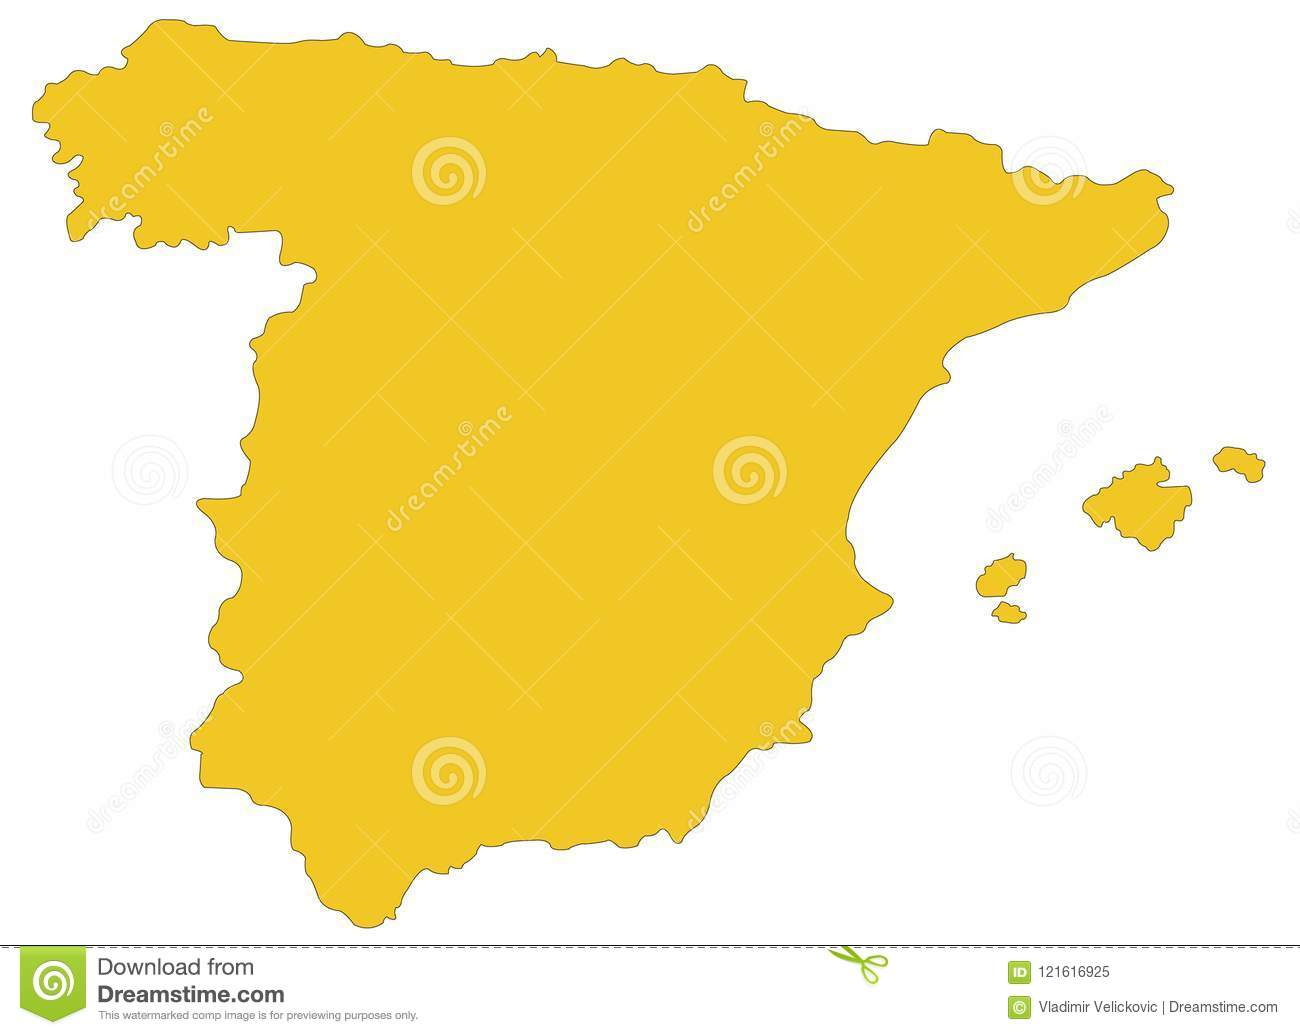 Spain Map - Sovereign State On The Iberian Peninsula In ... on spanish language, amazon river on world map, rift valley on world map, red sea on world map, bering strait on world map, middle east on world map, black sea on world map, russia on world map, black sea, indonesia on world map, rock of gibraltar, italian peninsula, india on world map, malay peninsula on world map, croatia on world map, strait of gibraltar on world map, spanish inquisition, korean peninsula on world map, indochina peninsula on world map, yucatan peninsula on world map, strait of gibraltar, scandinavian peninsula, jutland peninsula on world map, andes mountains on world map, mesoamerica world map, puget sound on world map,